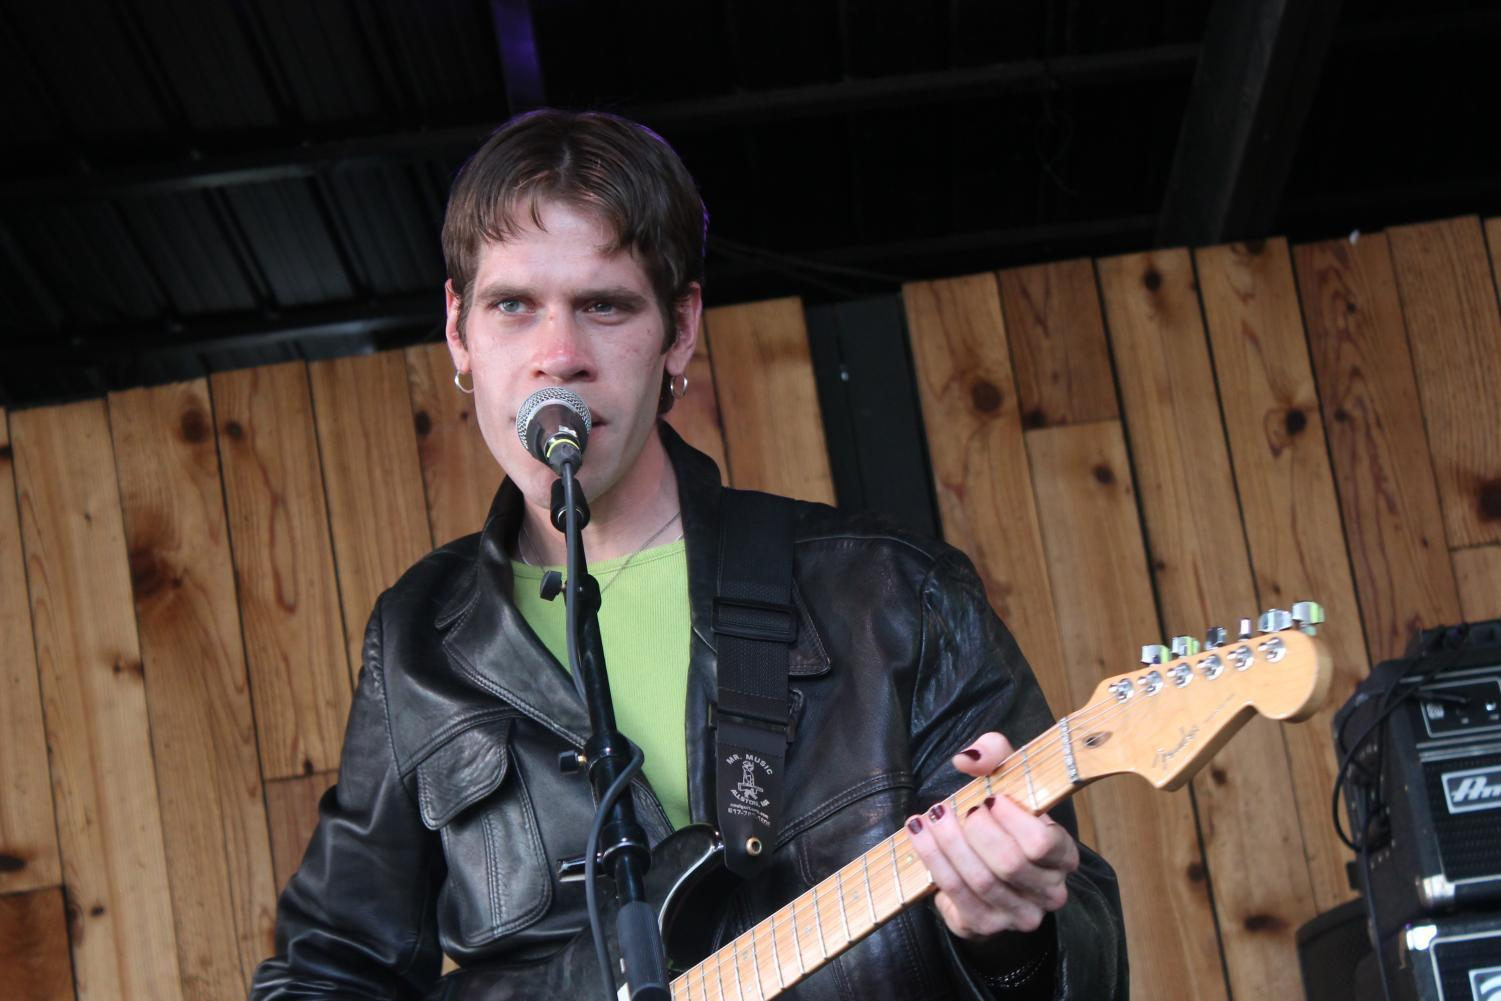 Porches' frontman Aaron Maine performing at South by Southwest earlier this month.